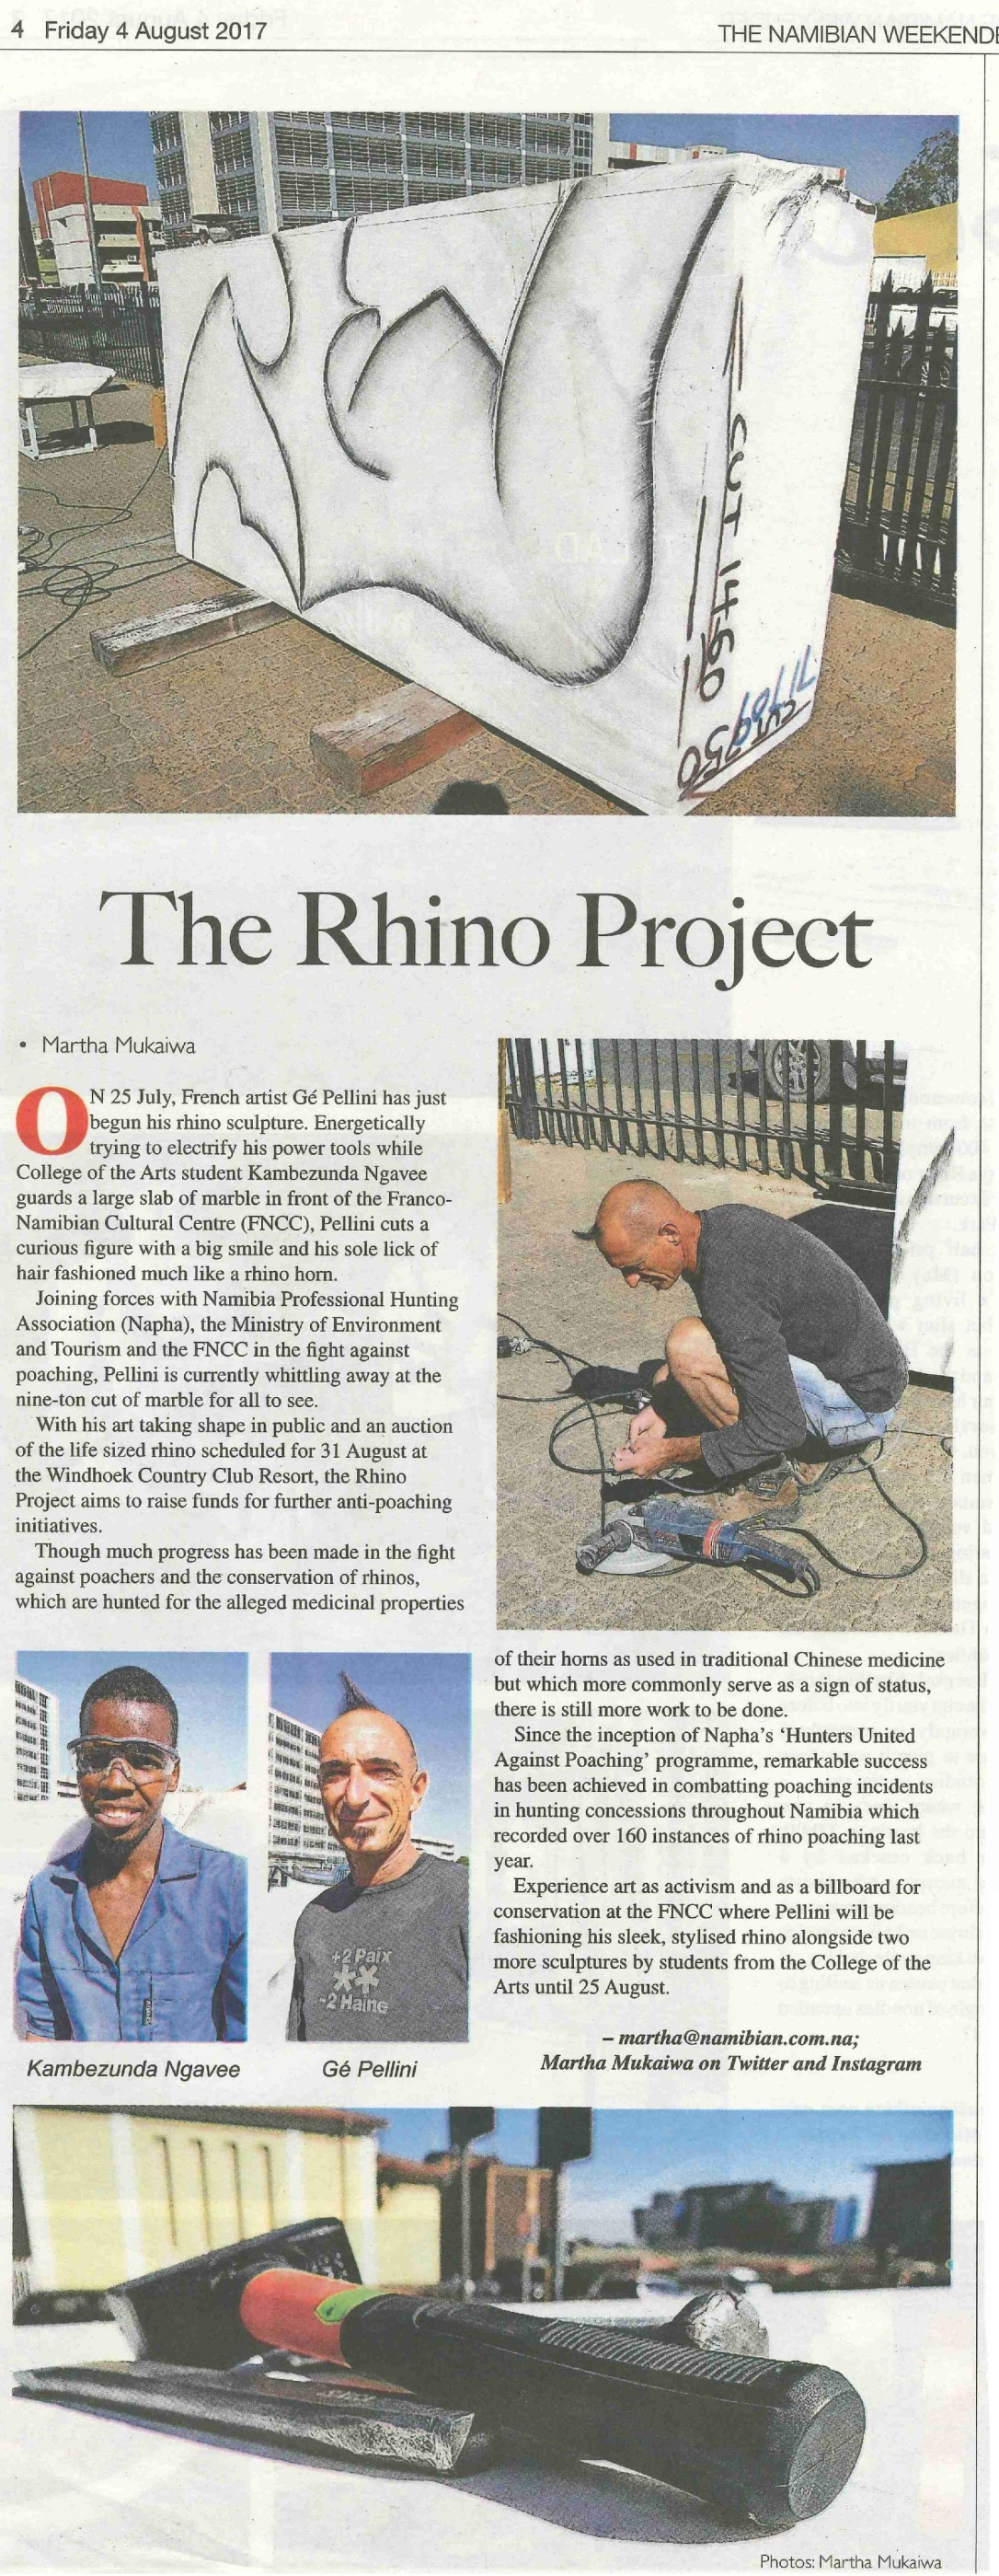 20170804 - The Namibian - The Rhino Project.jpg